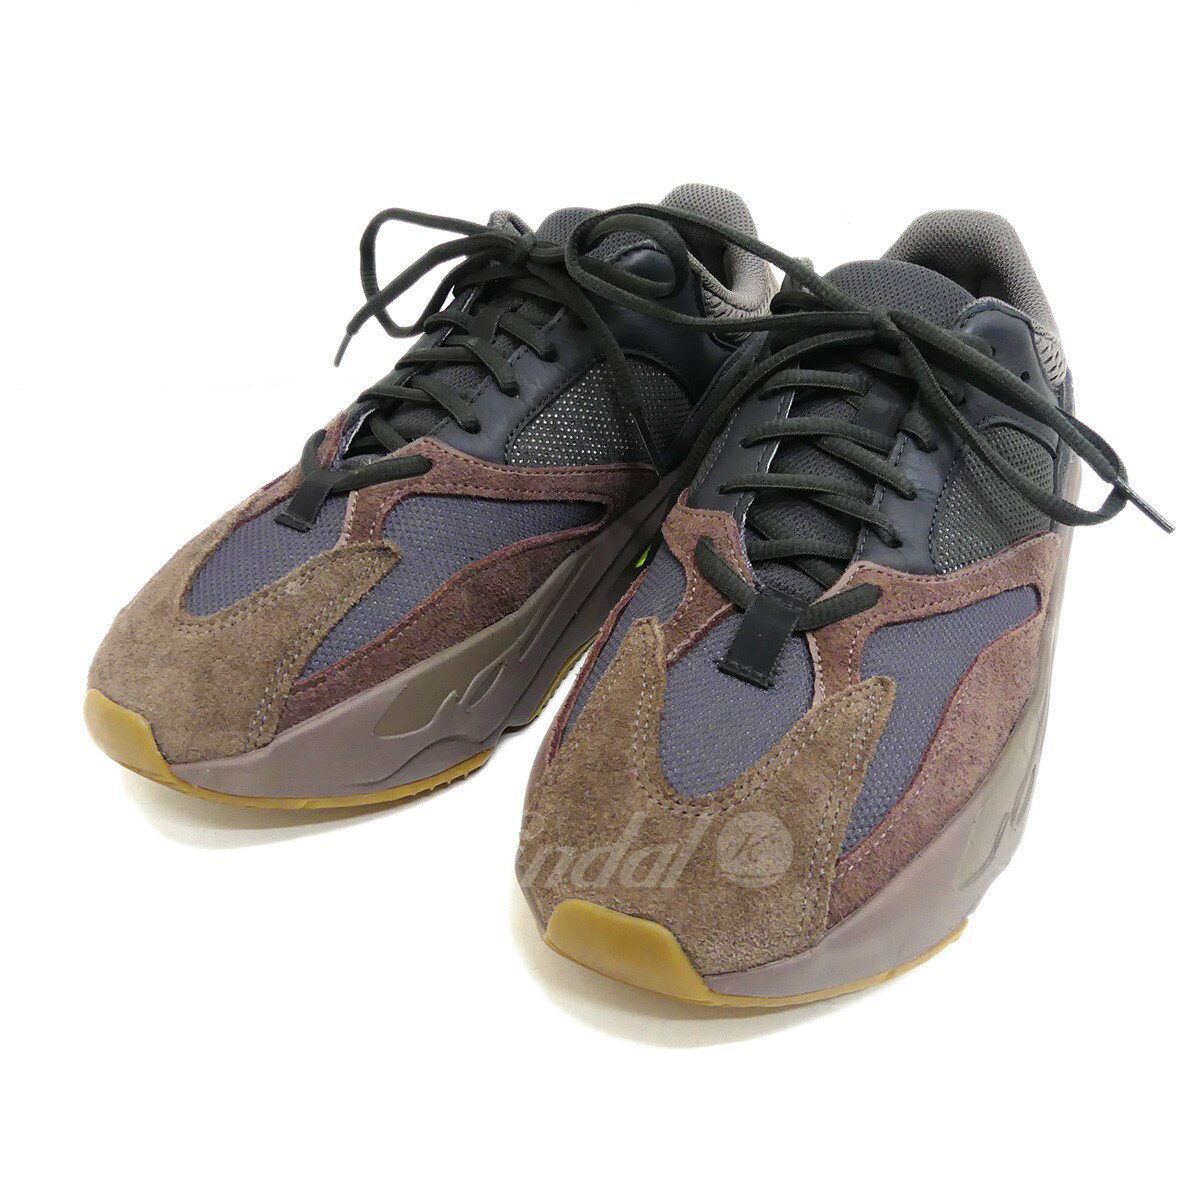 best cheap 843e8 95fc1 adidas originals by KANYE WEST sneakers YEEZY BOOST 700 EE9614 Mauve Gray  size: 27. 5 (Adidas originals by Kanie waist)